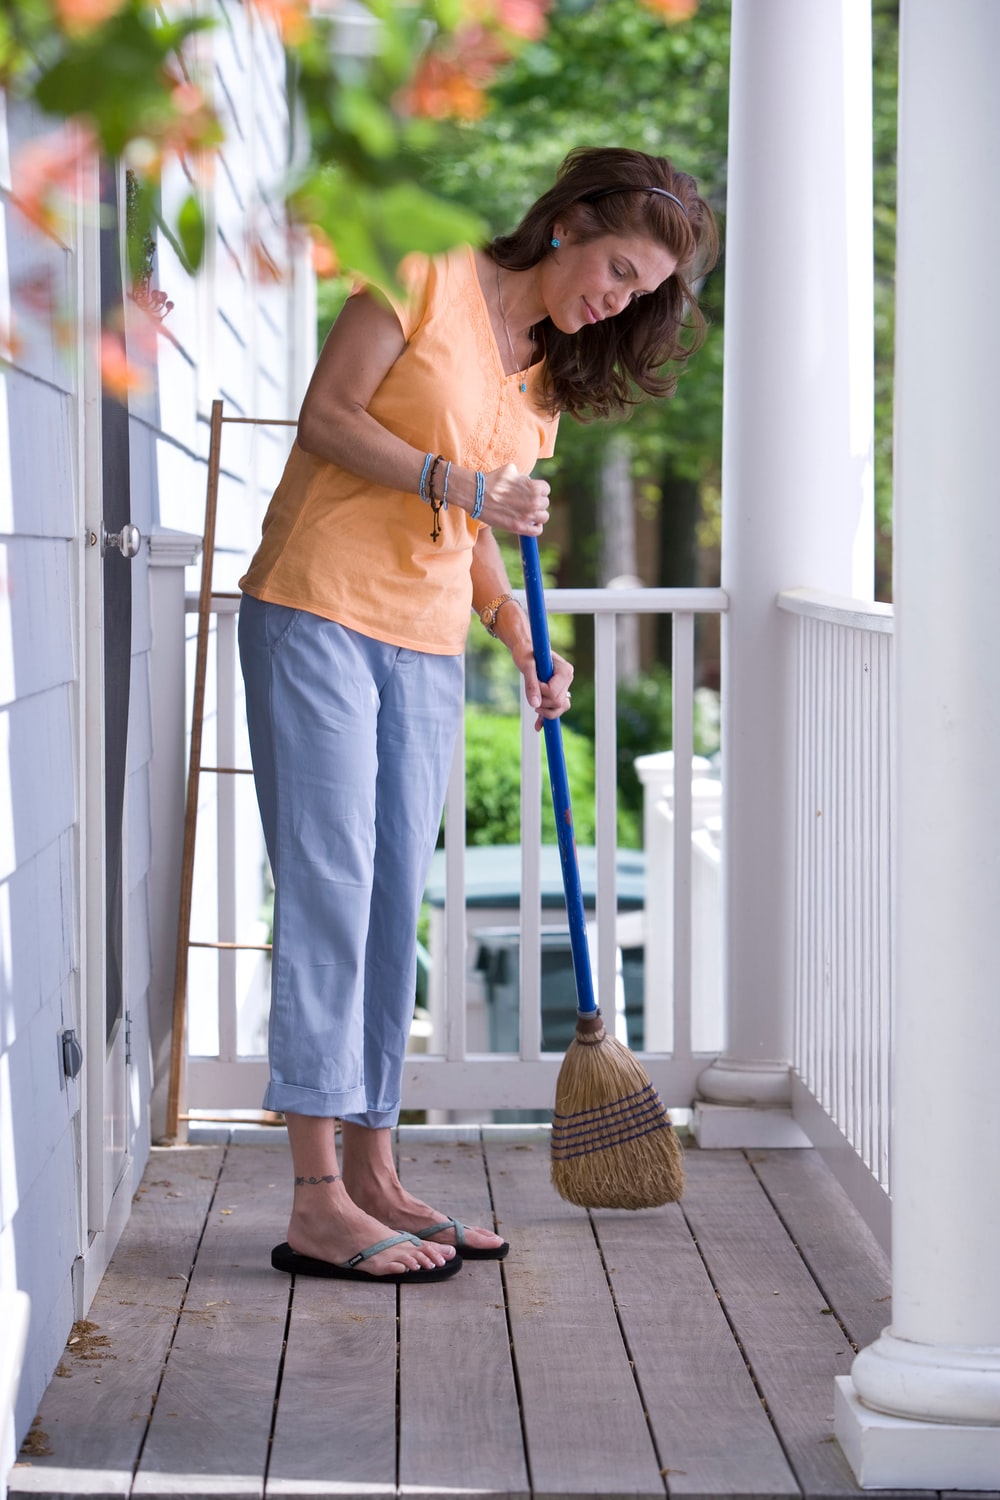 woman in yellow tank top and blue denim skirt holding broom